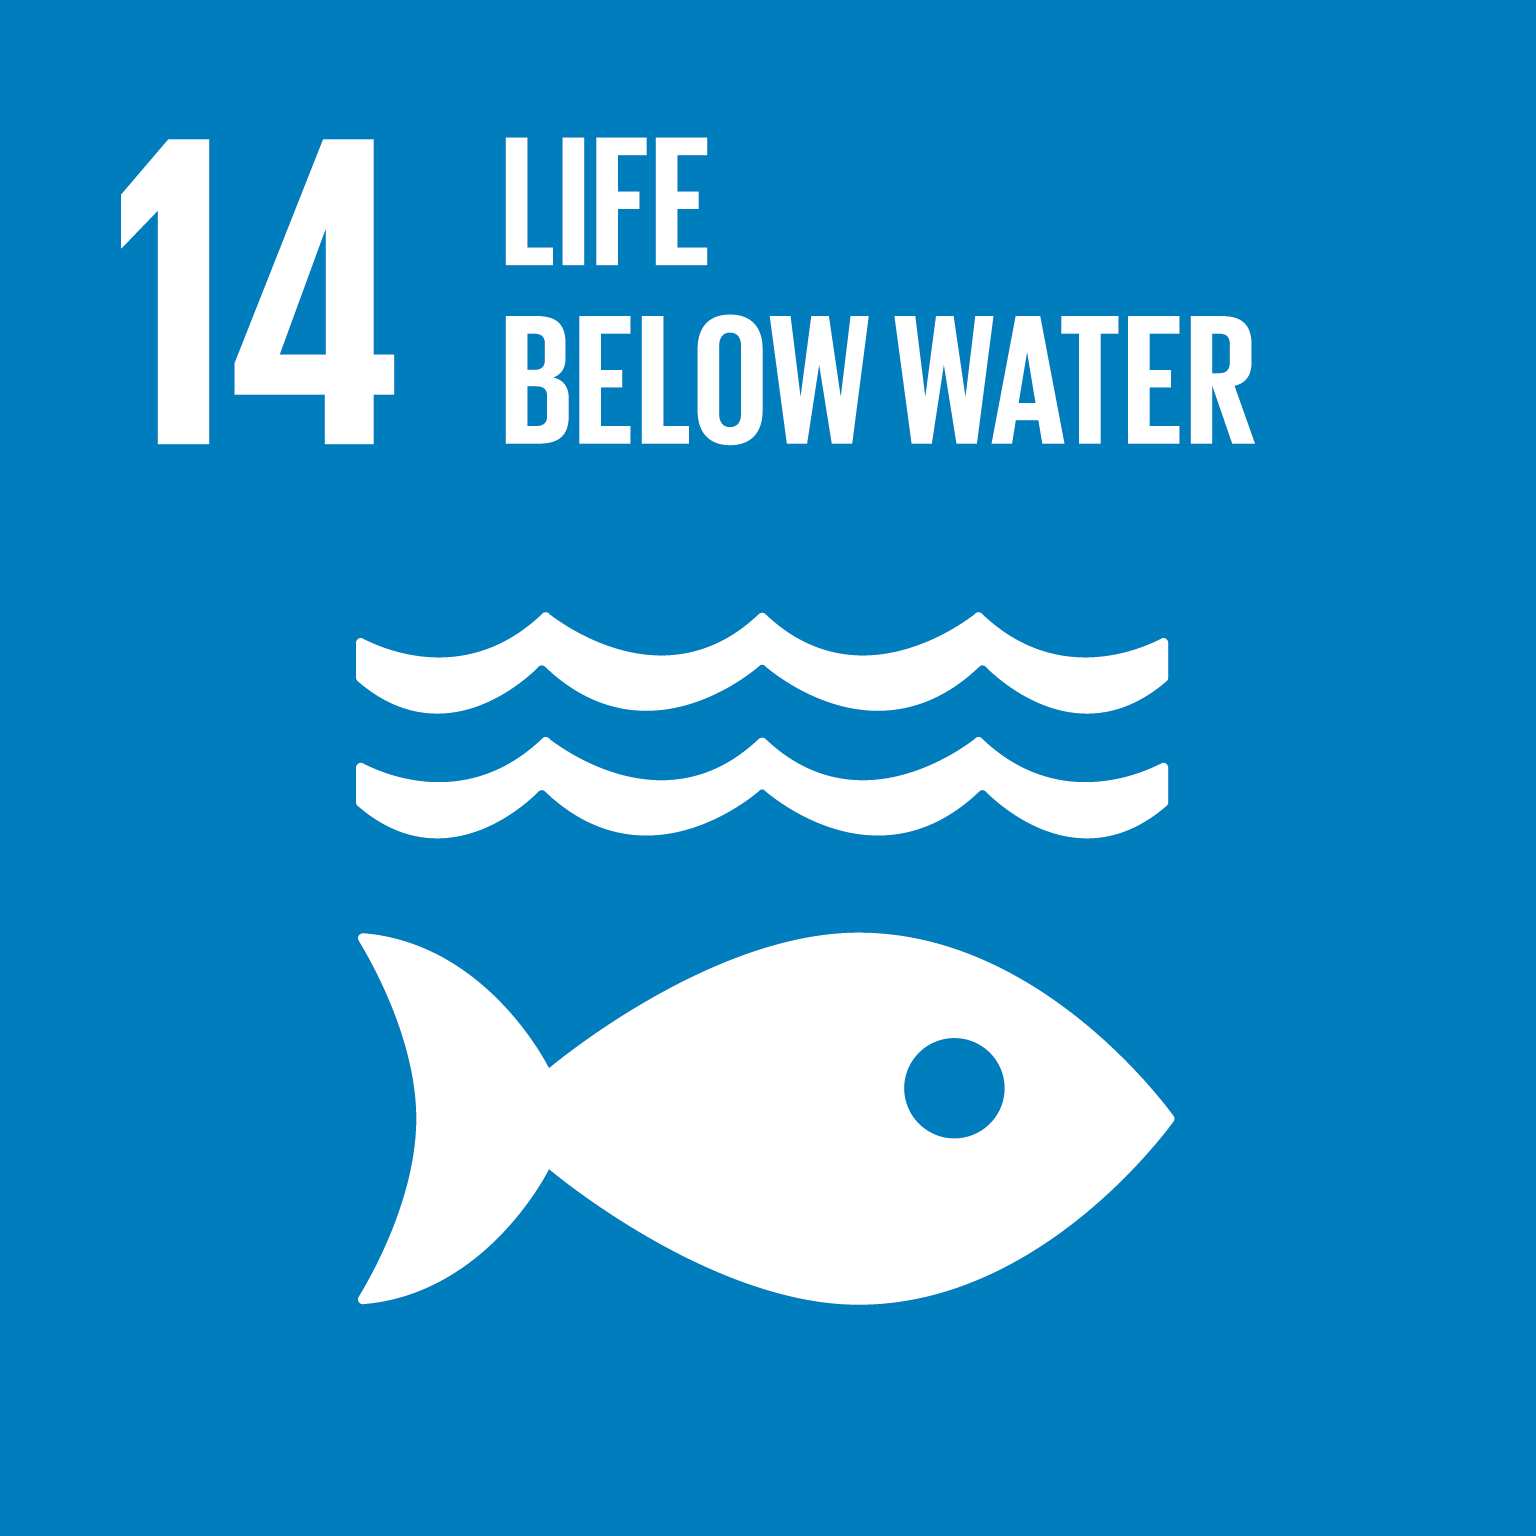 Sustainable Development Goal 14 icon